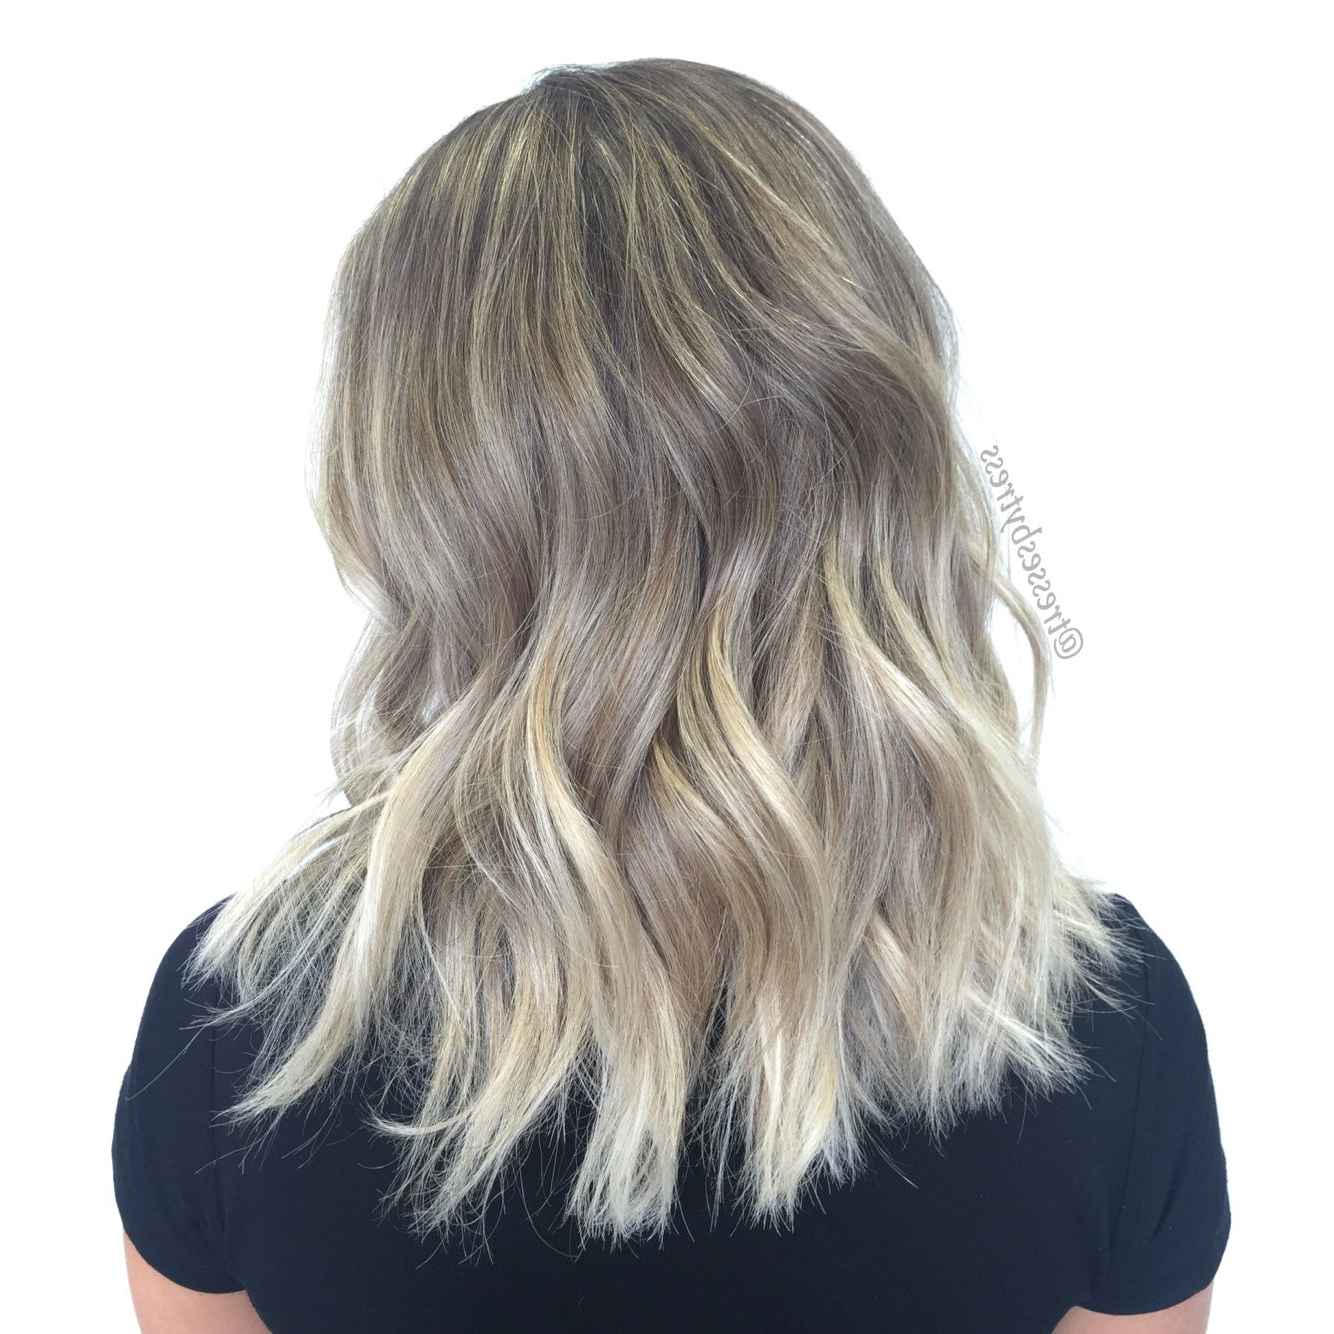 Balayage Blonde Textured Lob With Beach Waves   Blonde Pertaining To Beachy Waves Hairstyles With Balayage Ombre (View 16 of 20)